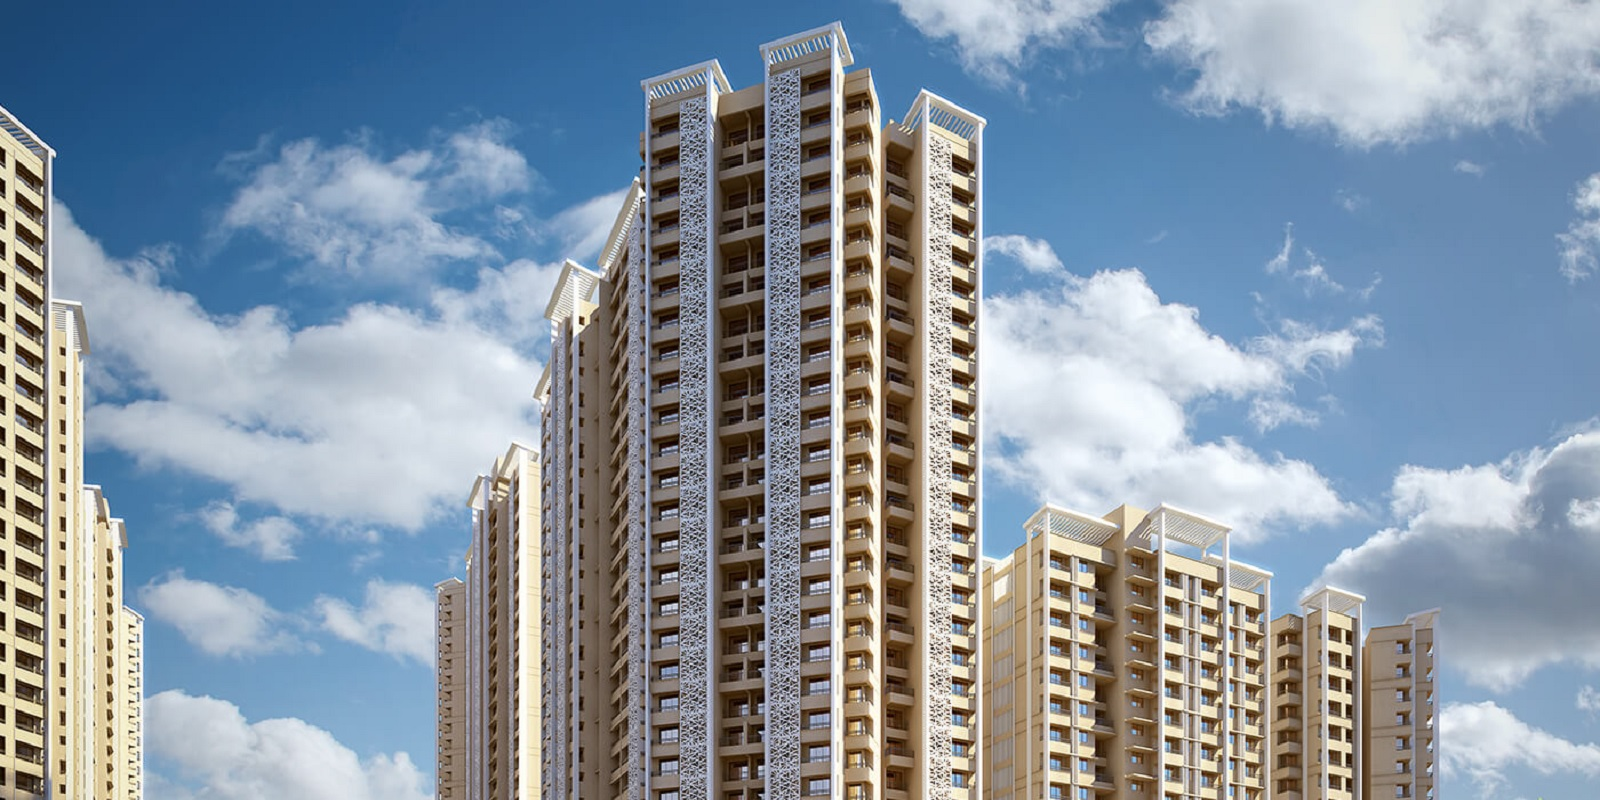 raunak city sector 4 d2 project large image2